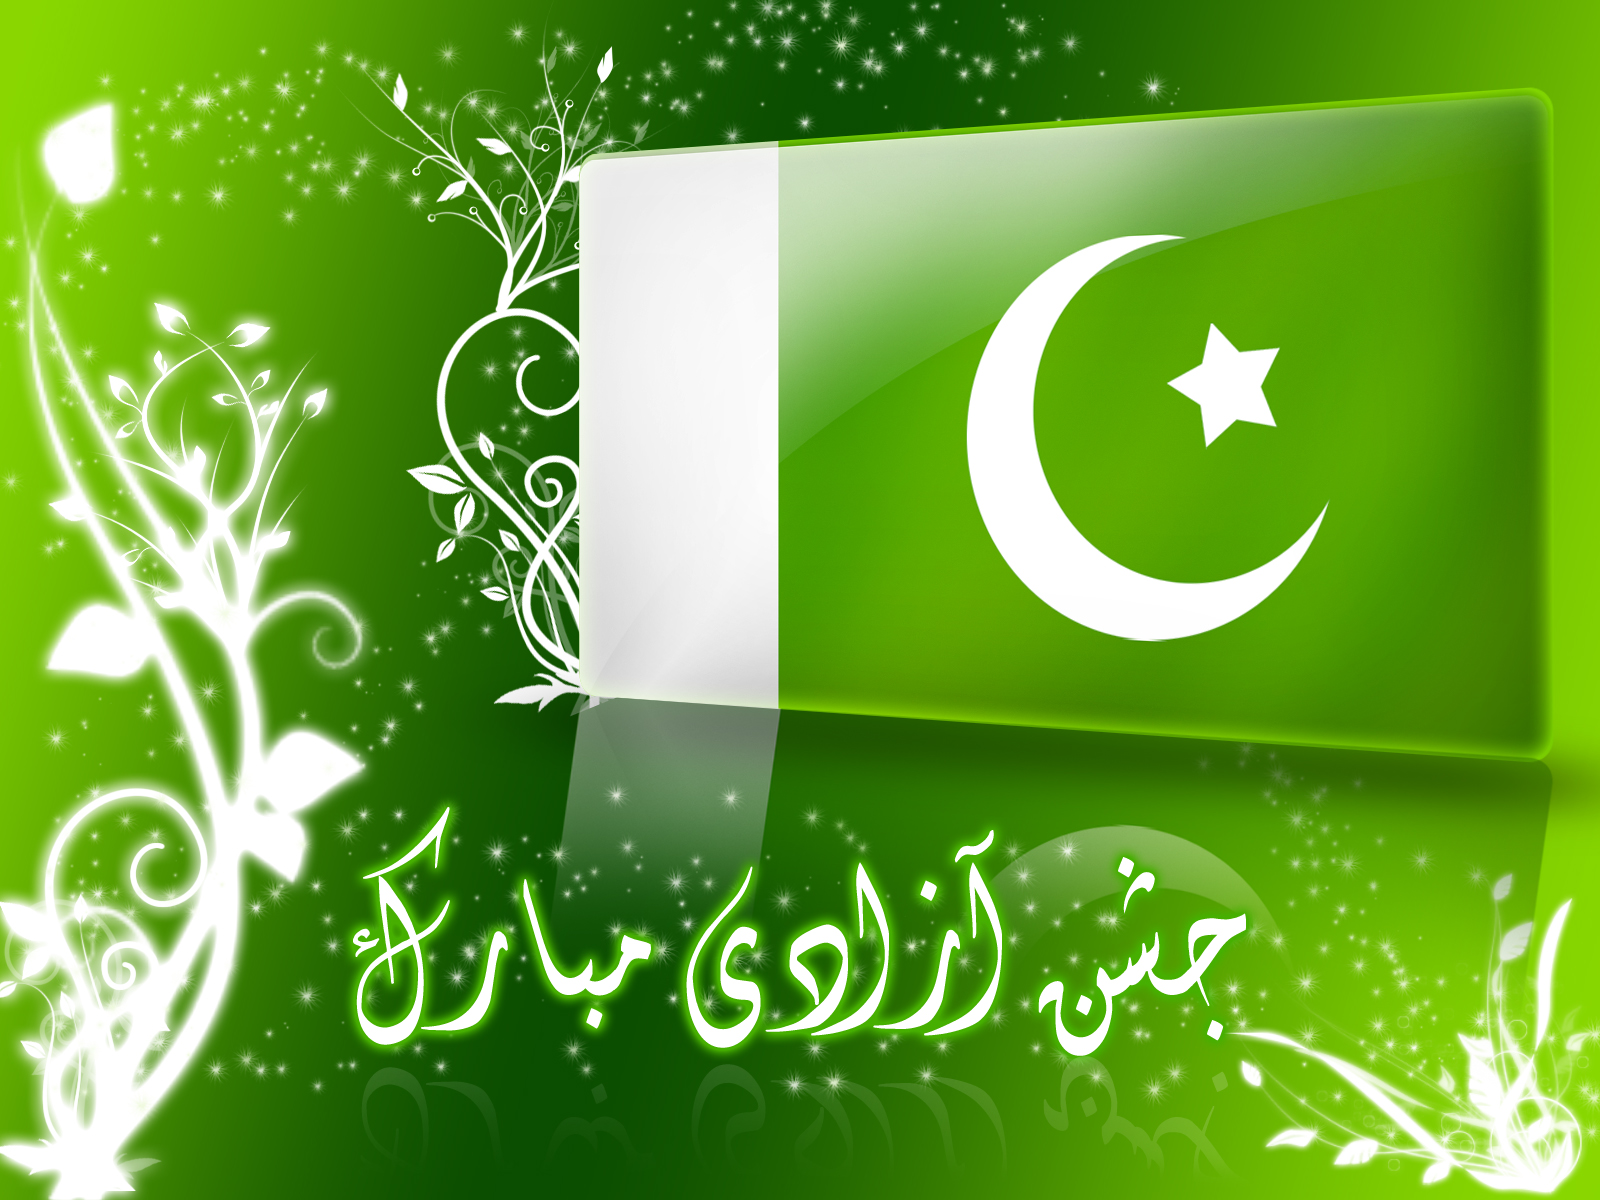 Pakistan Independence Day 14 August HD Wallpapers 2019